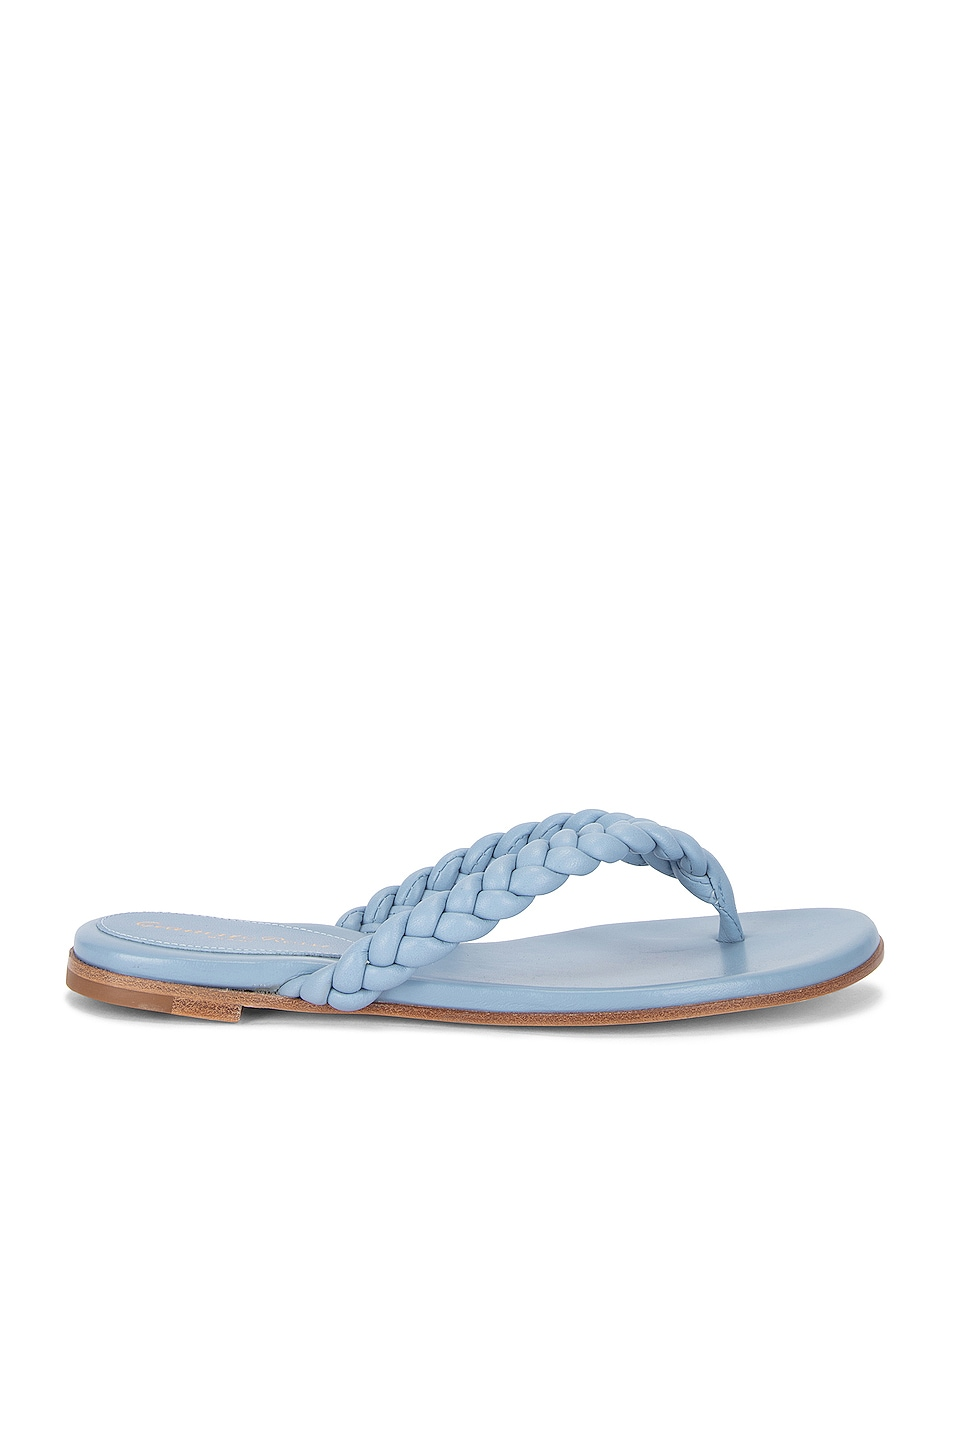 Image 1 of Gianvito Rossi Tropea Leather Flat Sandals in Stonewash